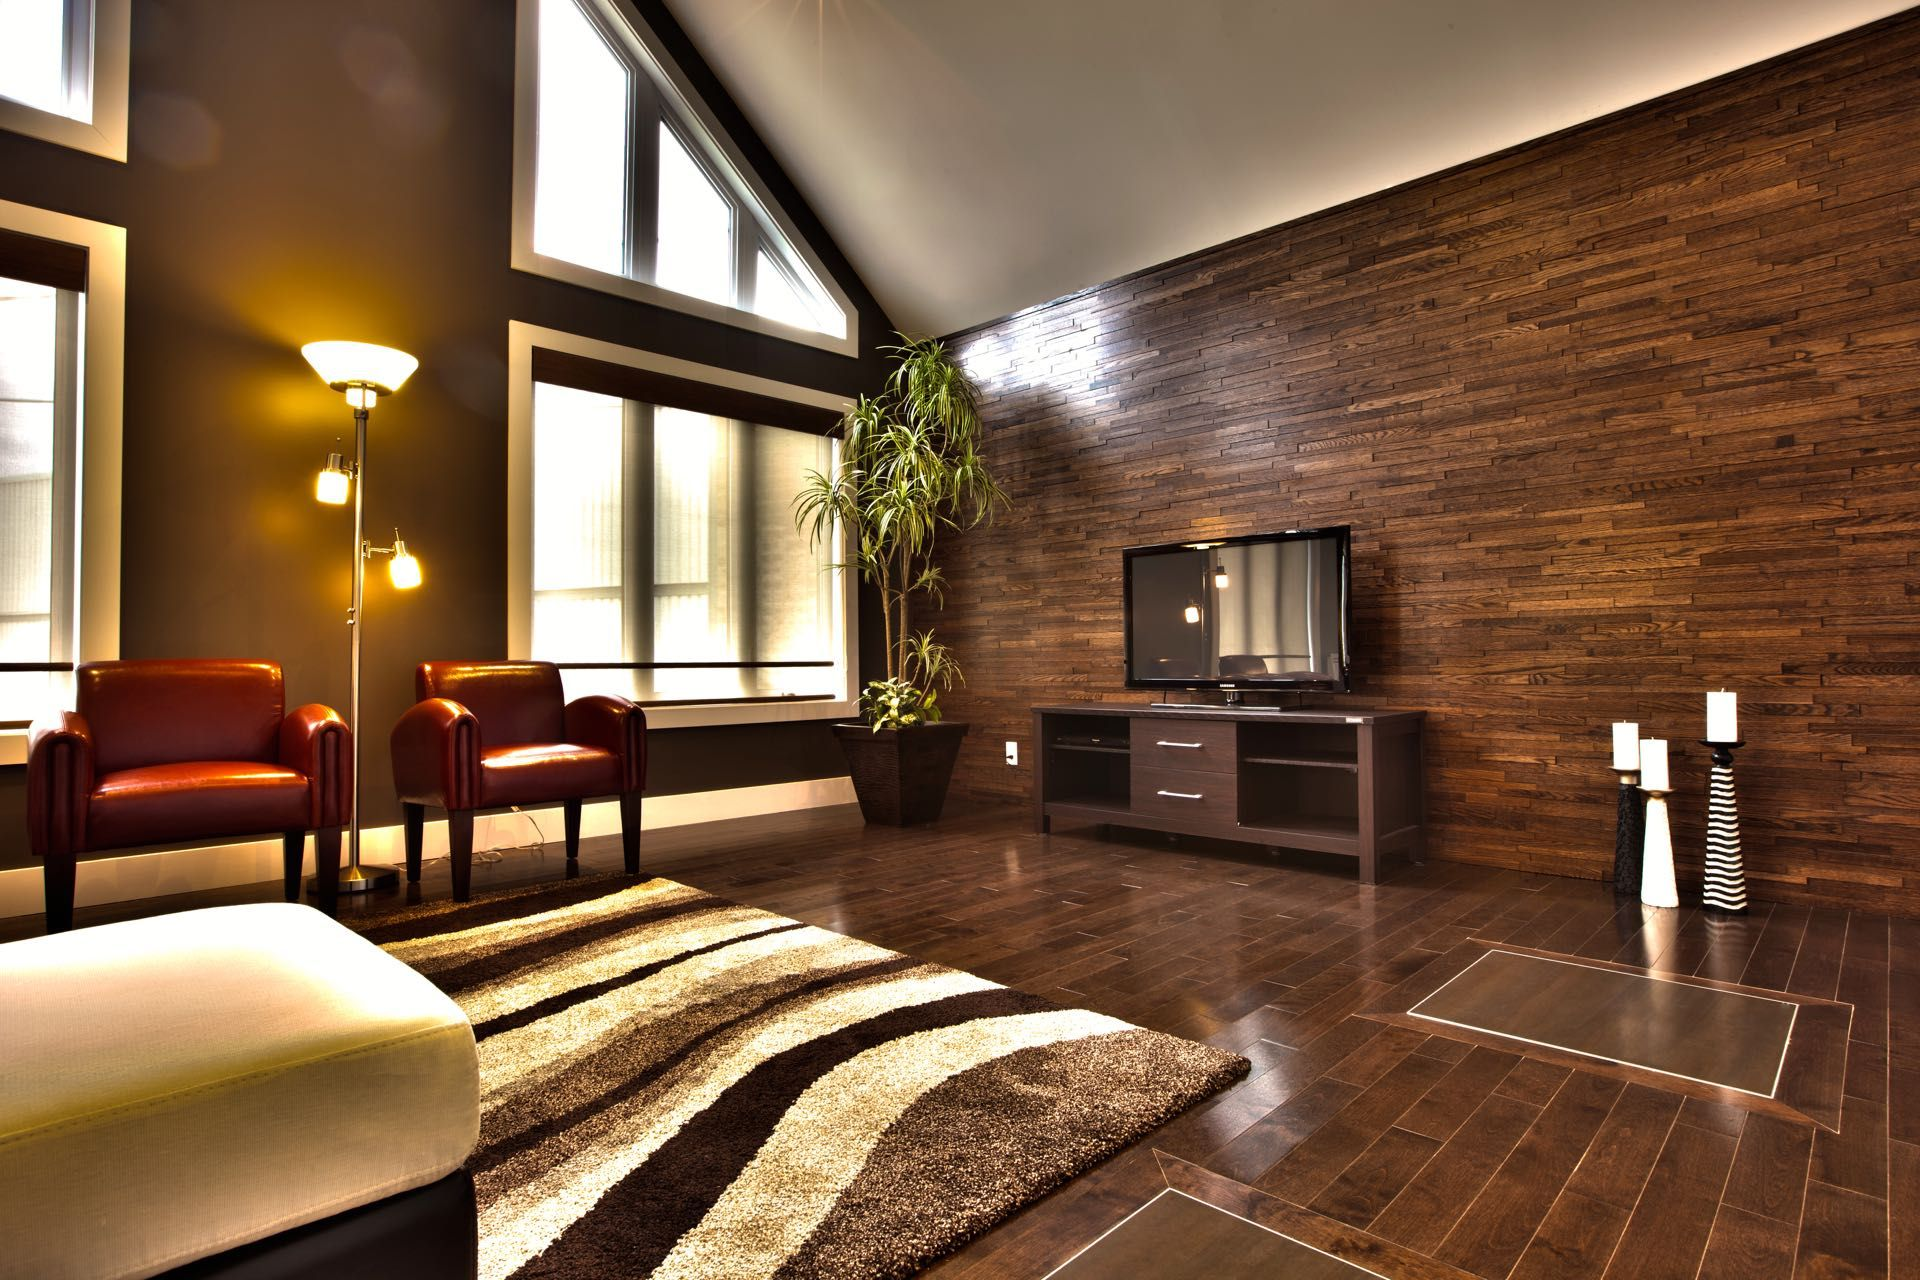 Image of: Wood Paneling Walls Design